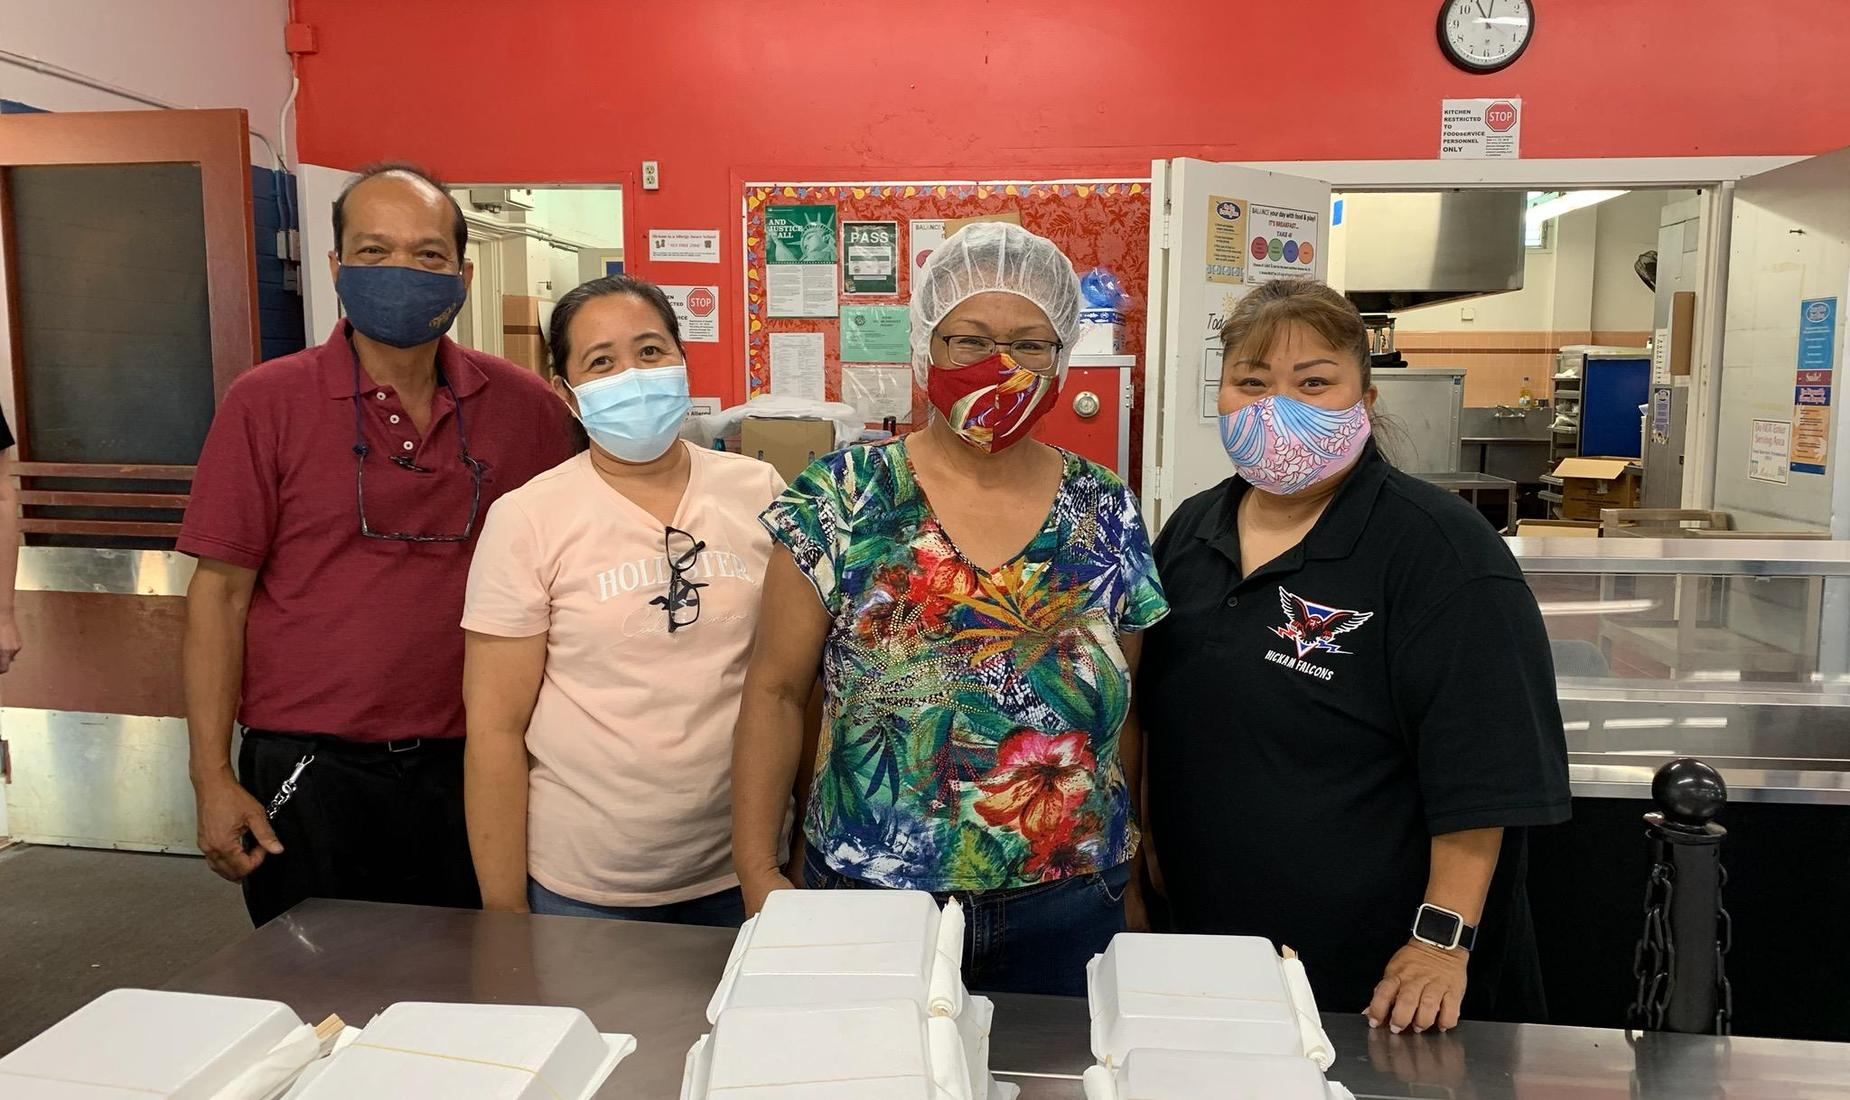 Our Cafeteria staff